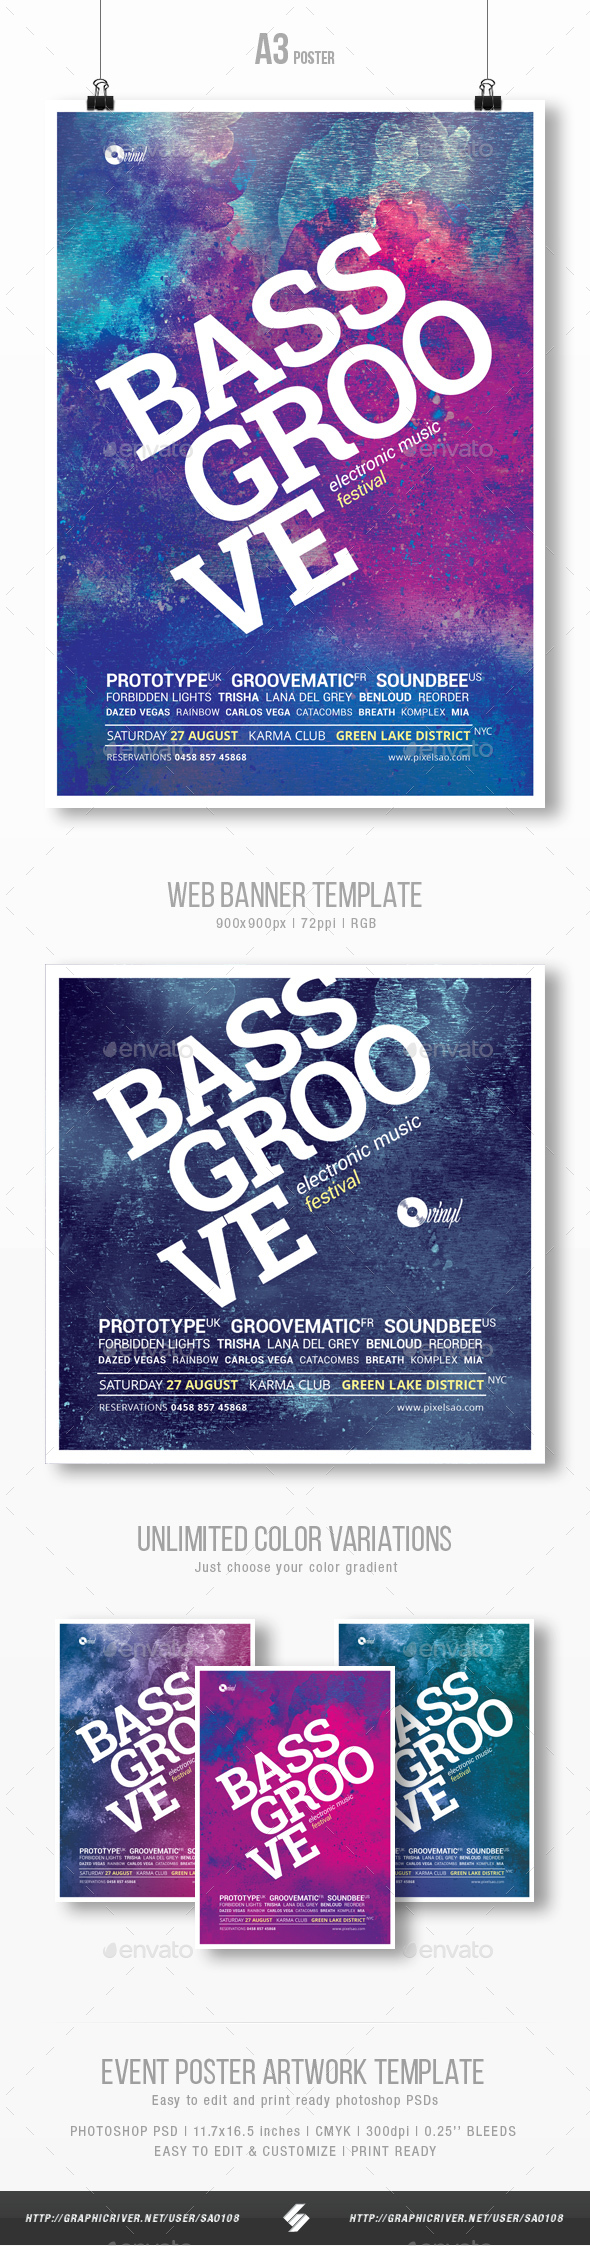 Bass Groove - Party Flyer / Poster Template A3 - Clubs & Parties Events